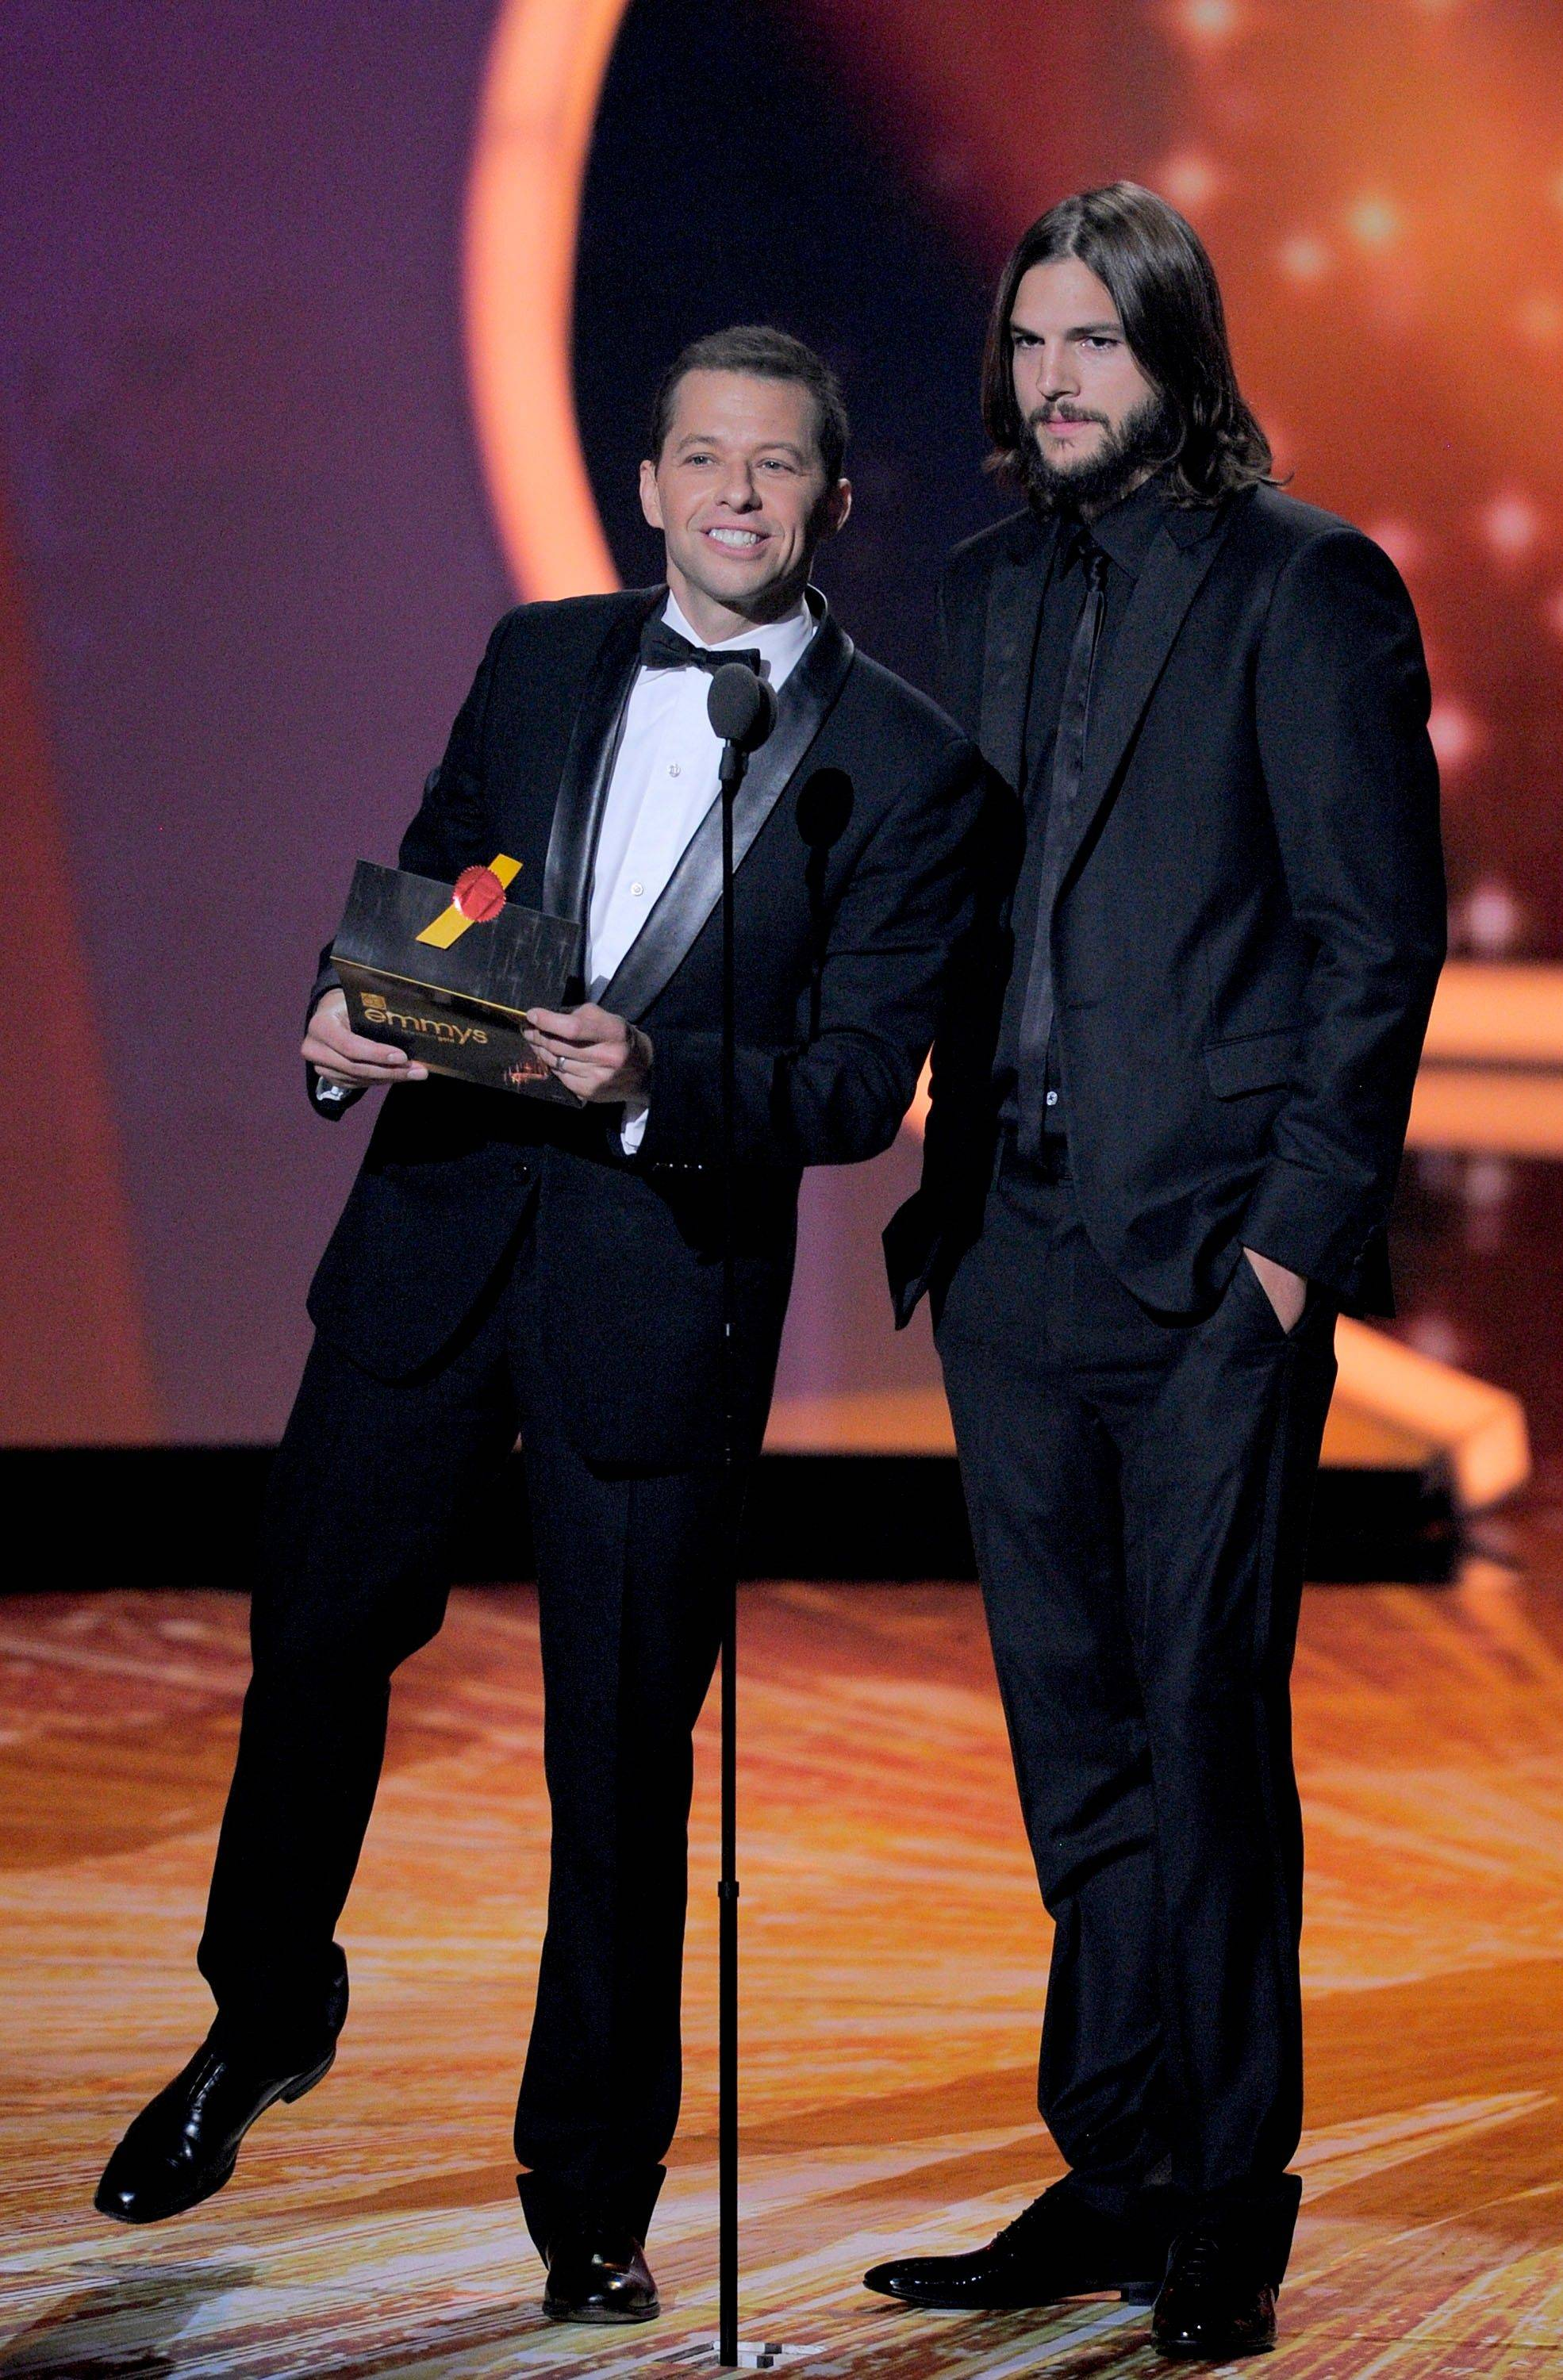 Jon Cryer, left, and Ashton Kutcher present the award for outstanding supporting actress in a drama series.